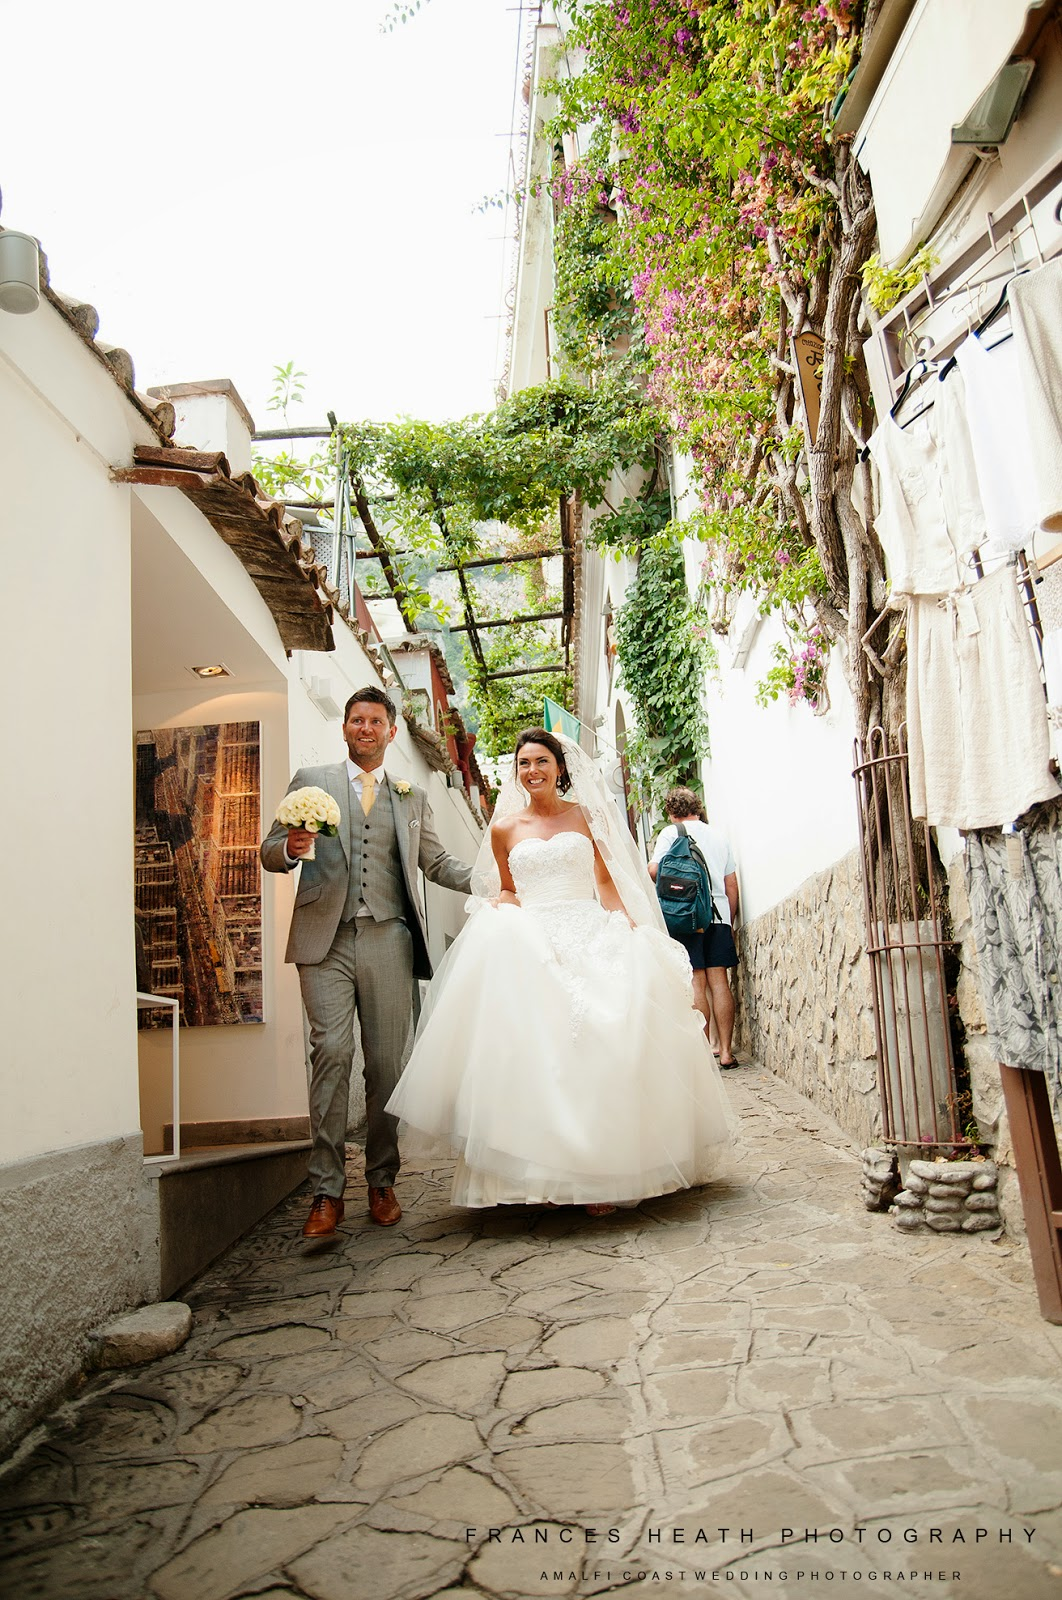 Bride and groom walking through street in Positano